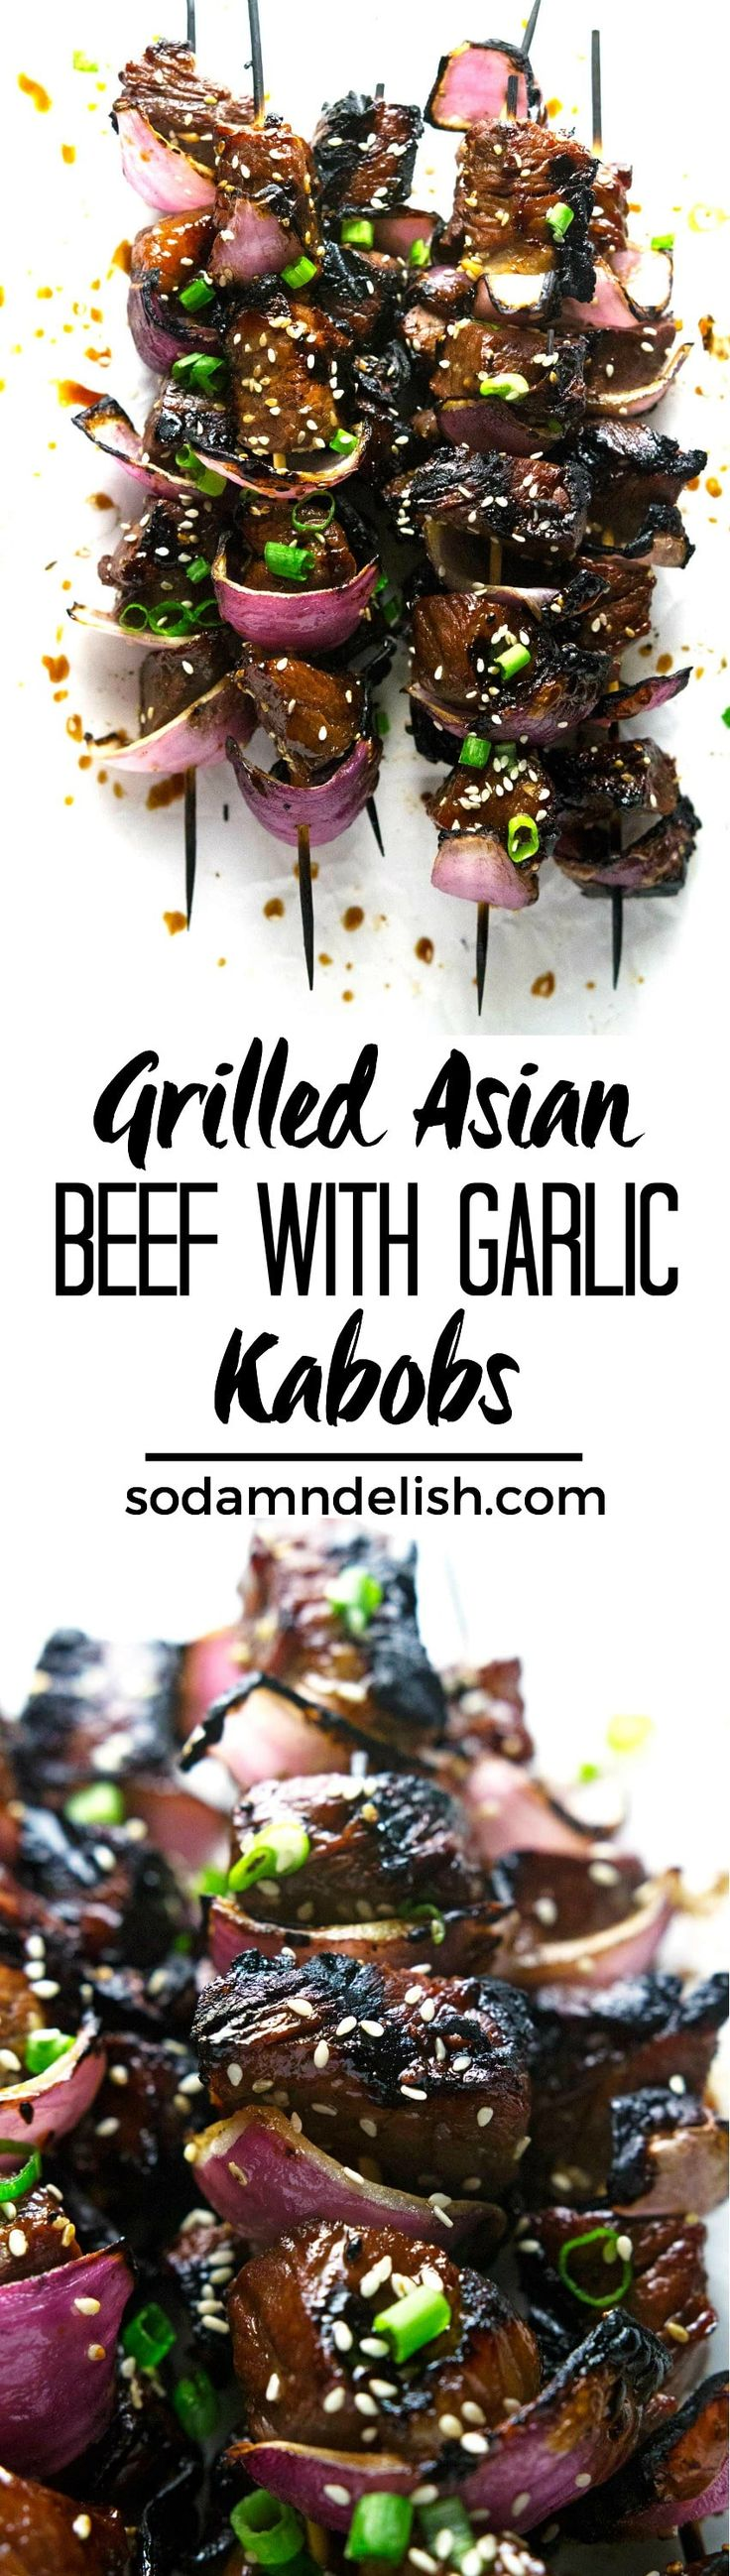 These grilled Asian Beef with Garlic Kabobs are marinated in a delicious Asian marinade then grilled to juicy perfection.